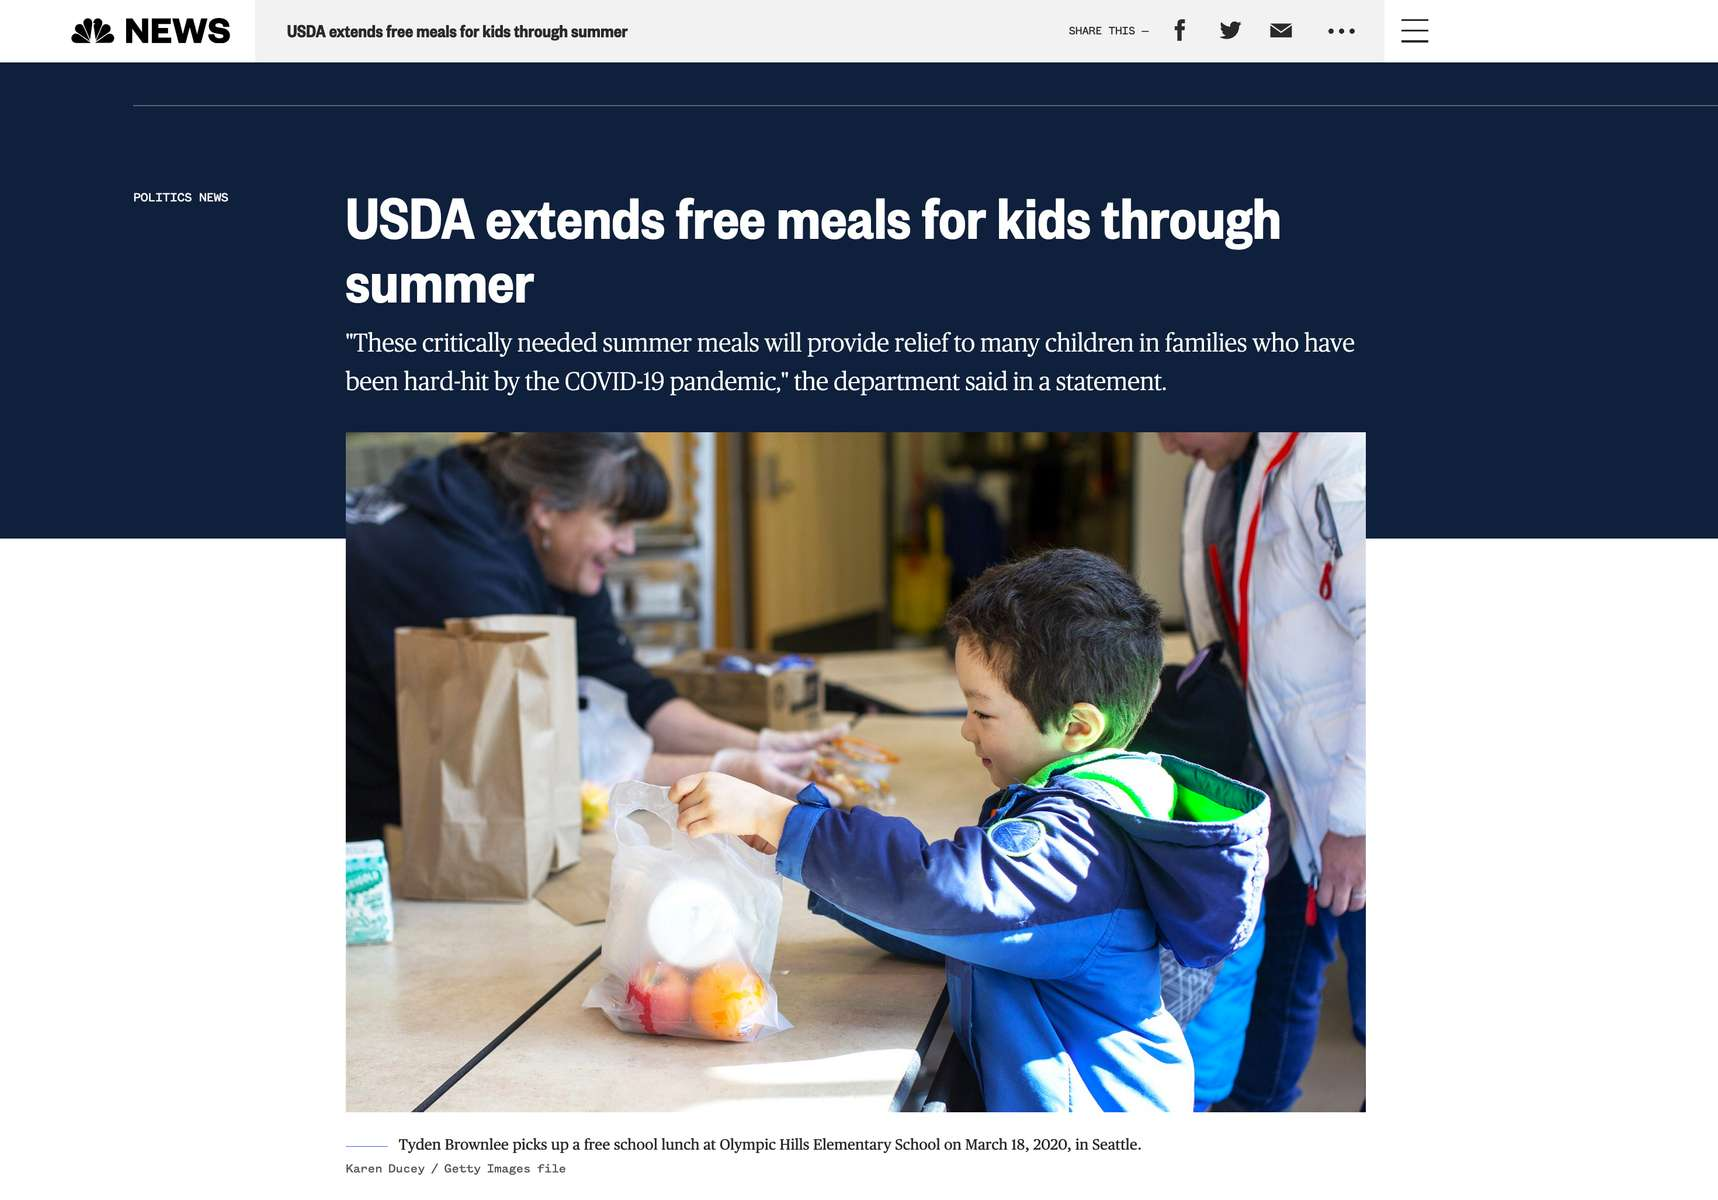 USDA extends free meals for kids through summer shot for Getty Images. Published on NBC News on March 10, 2021